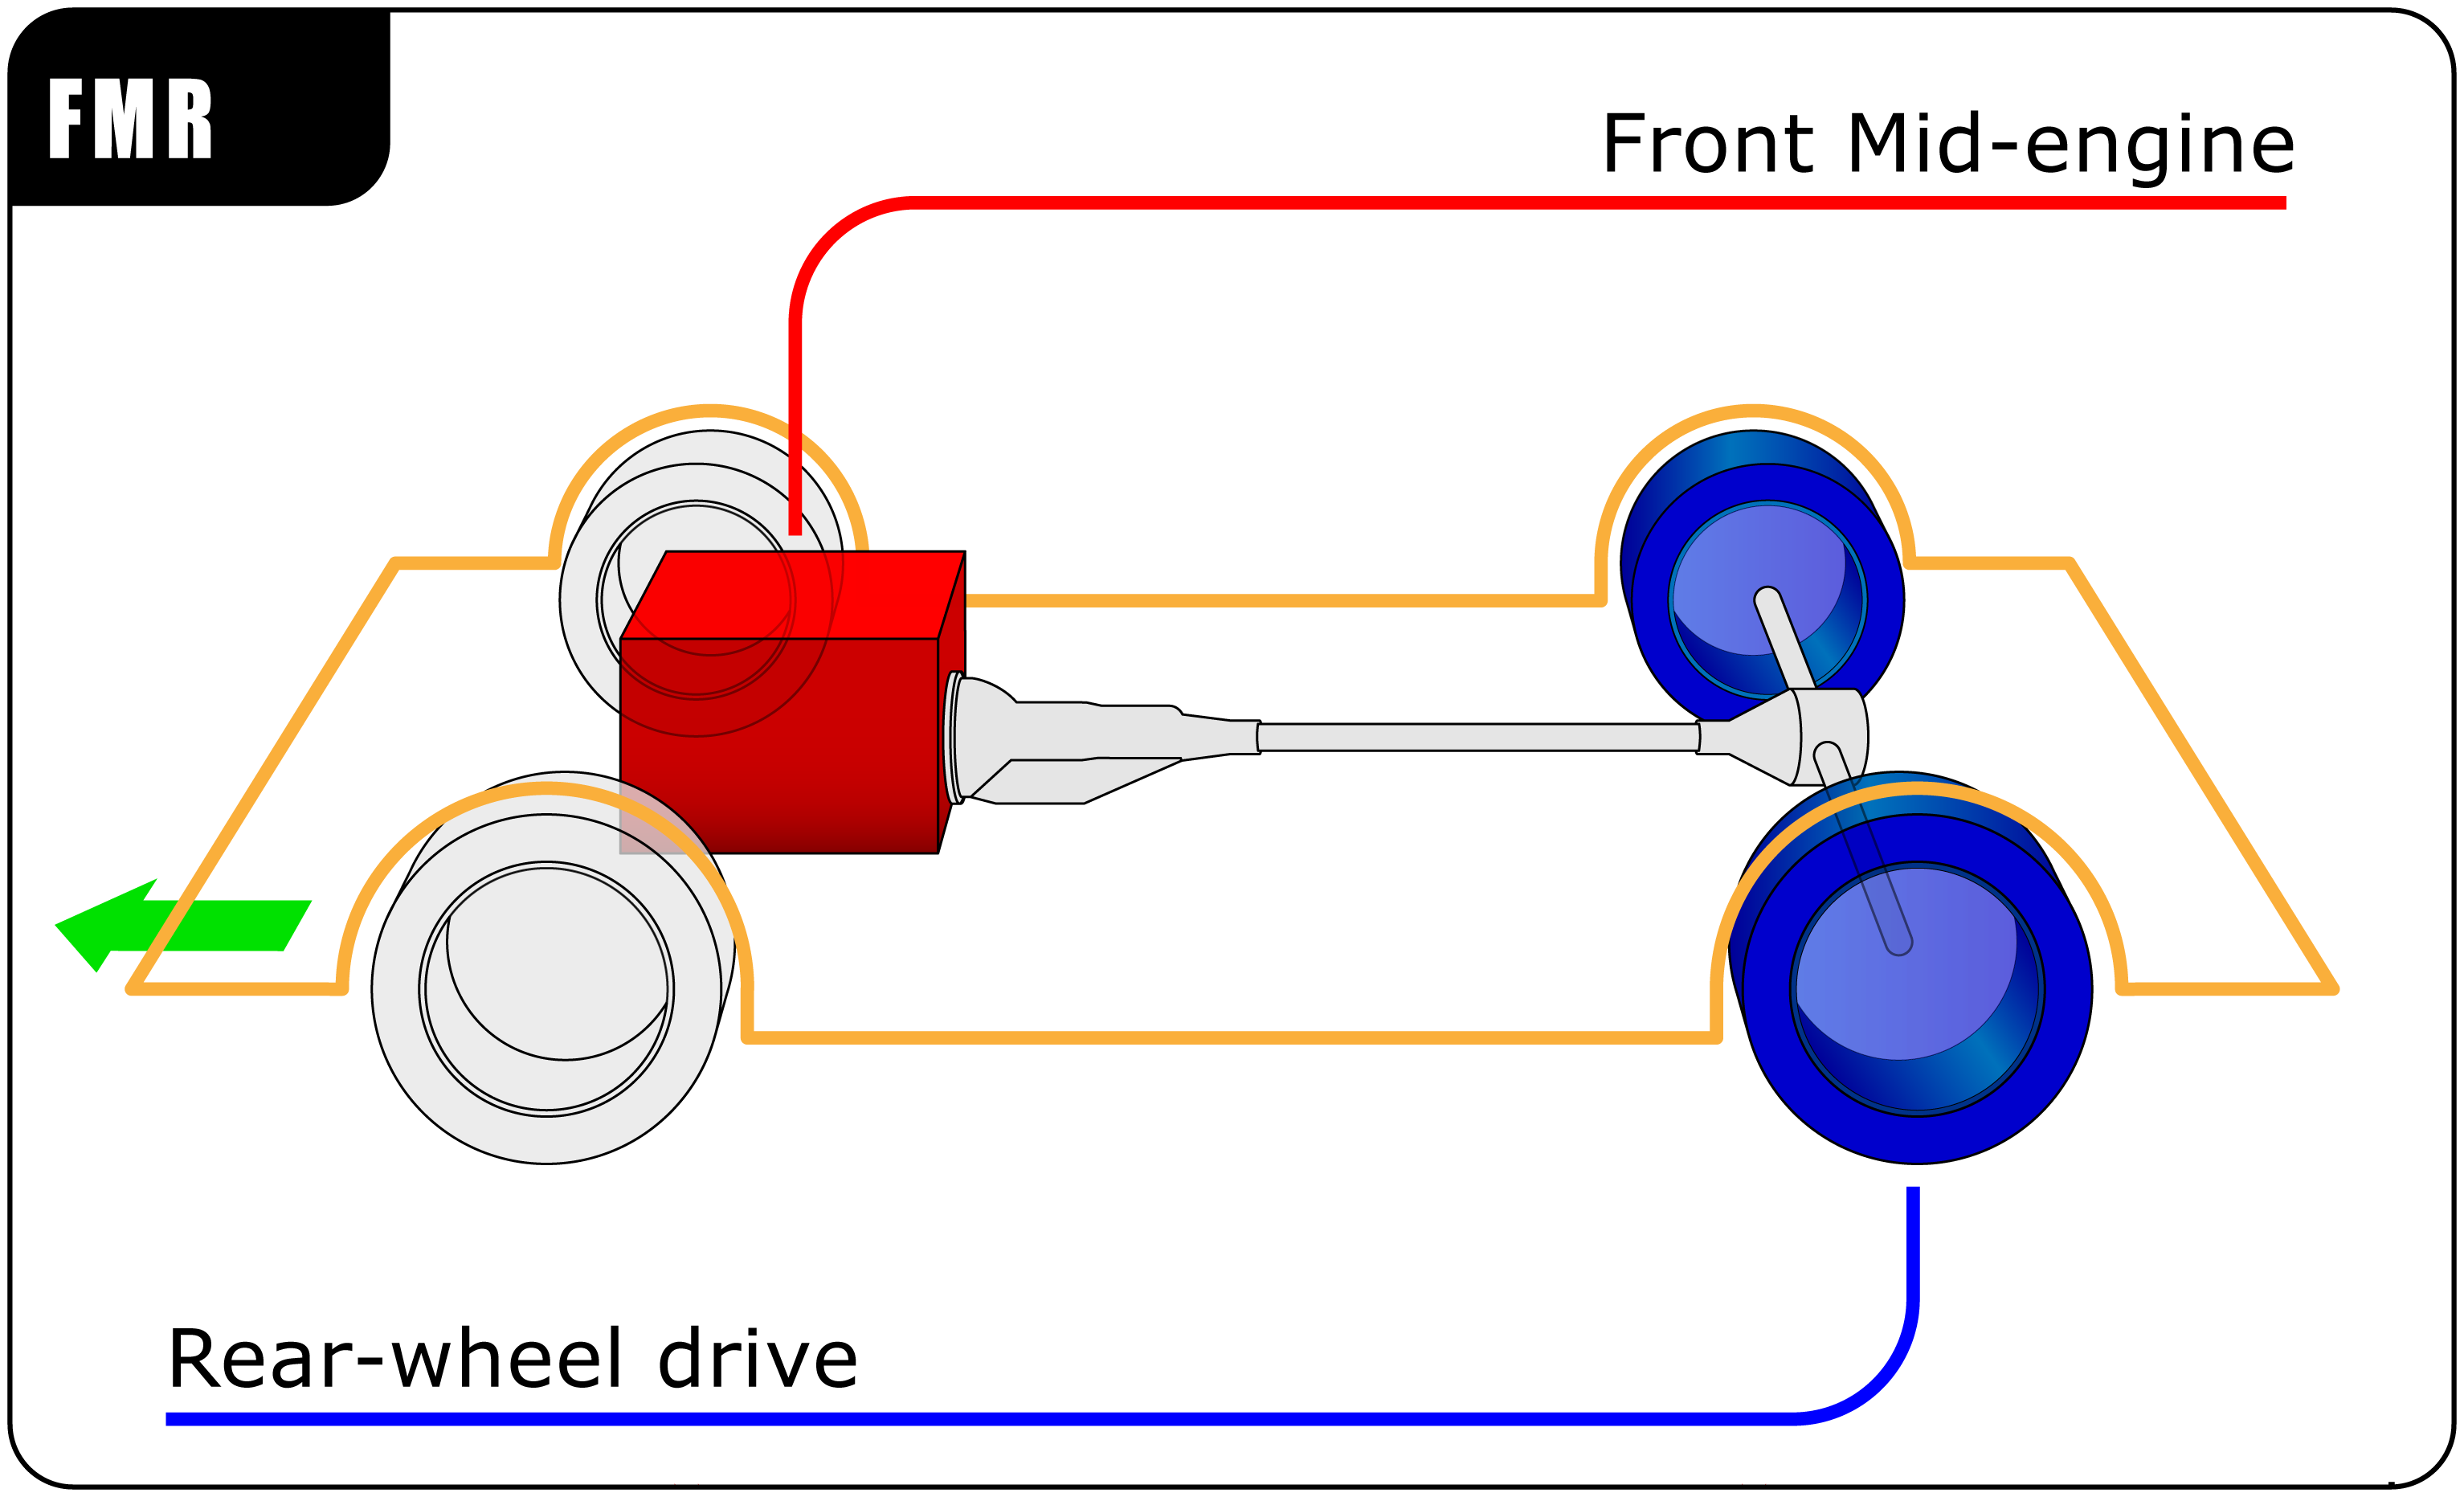 Front mid-engine position / Rear-wheel drive